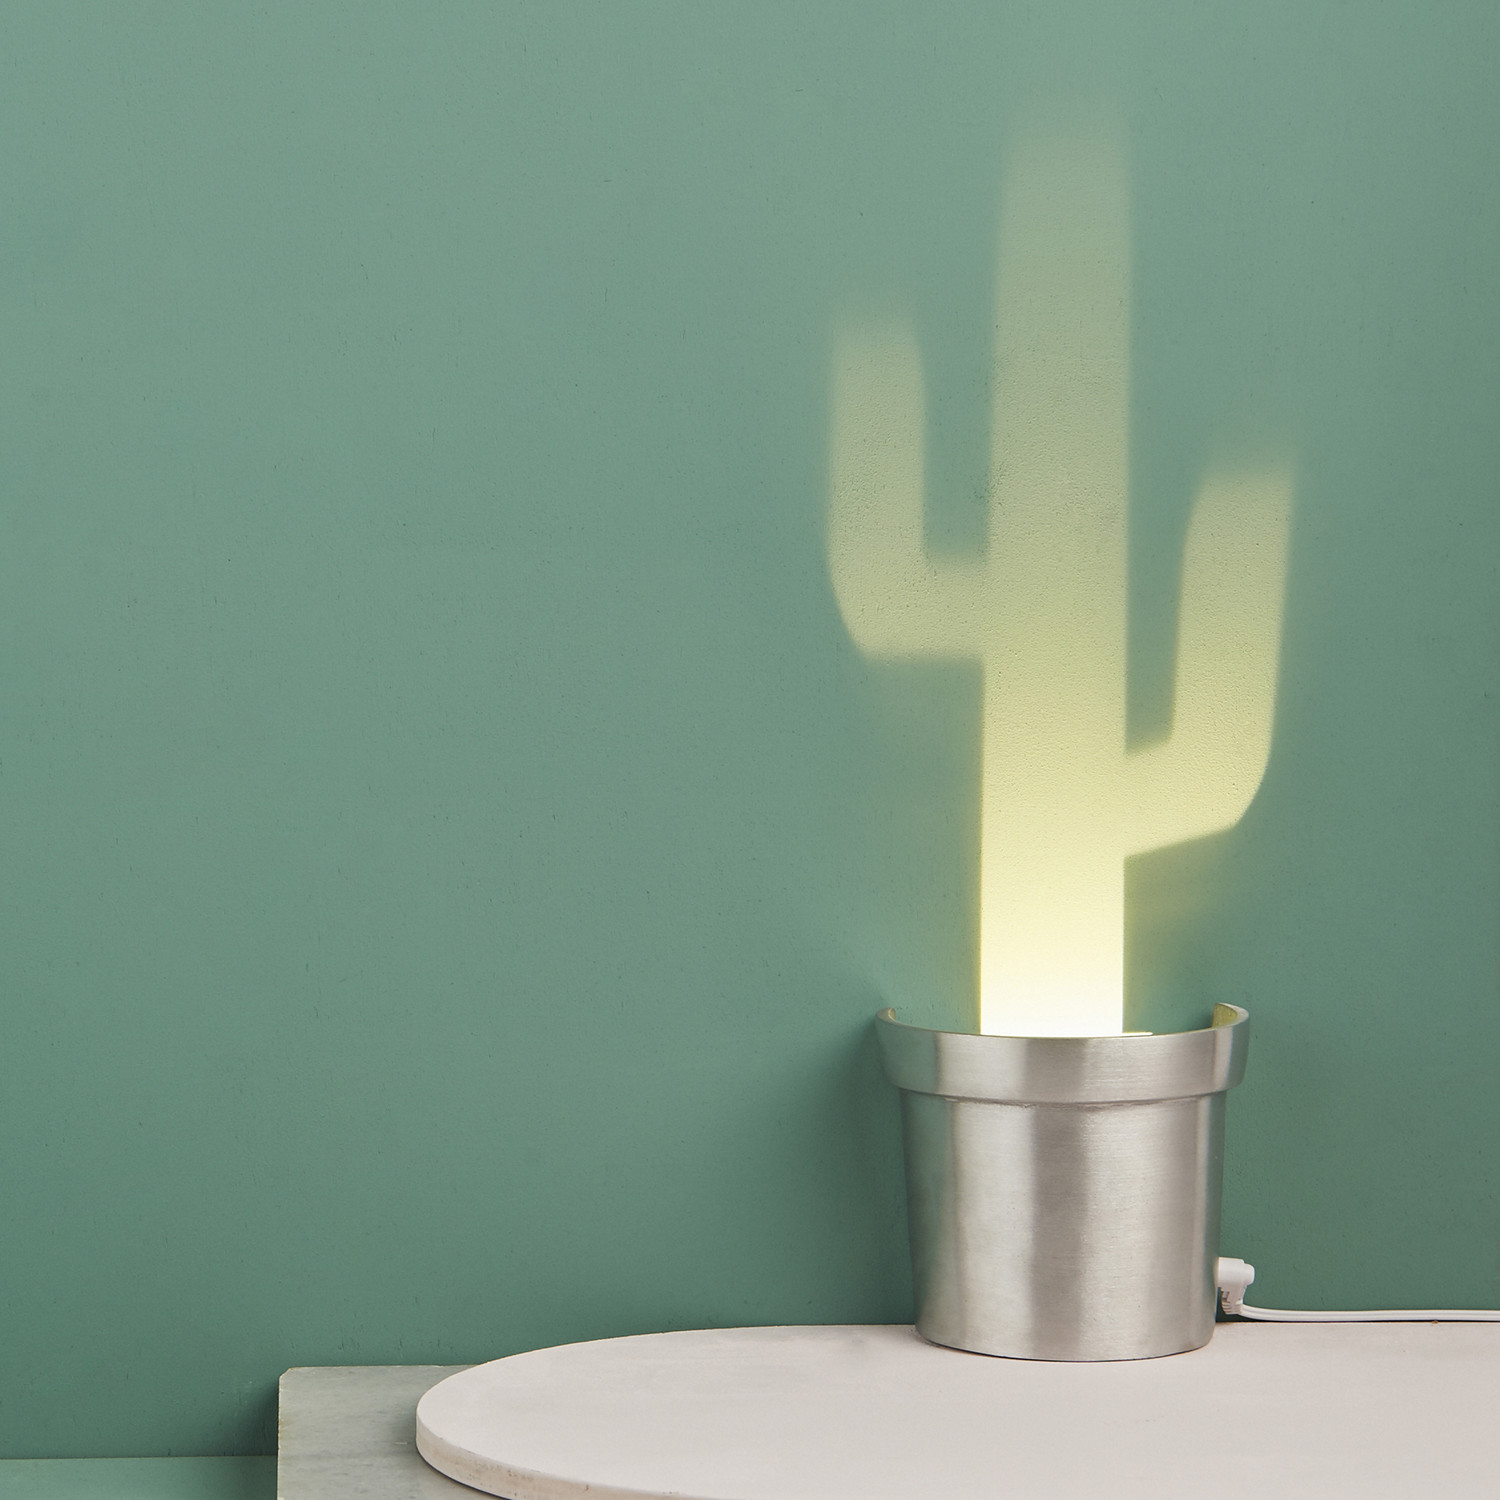 Cactus Verlichting Cactus Lighting Lighting Ideas